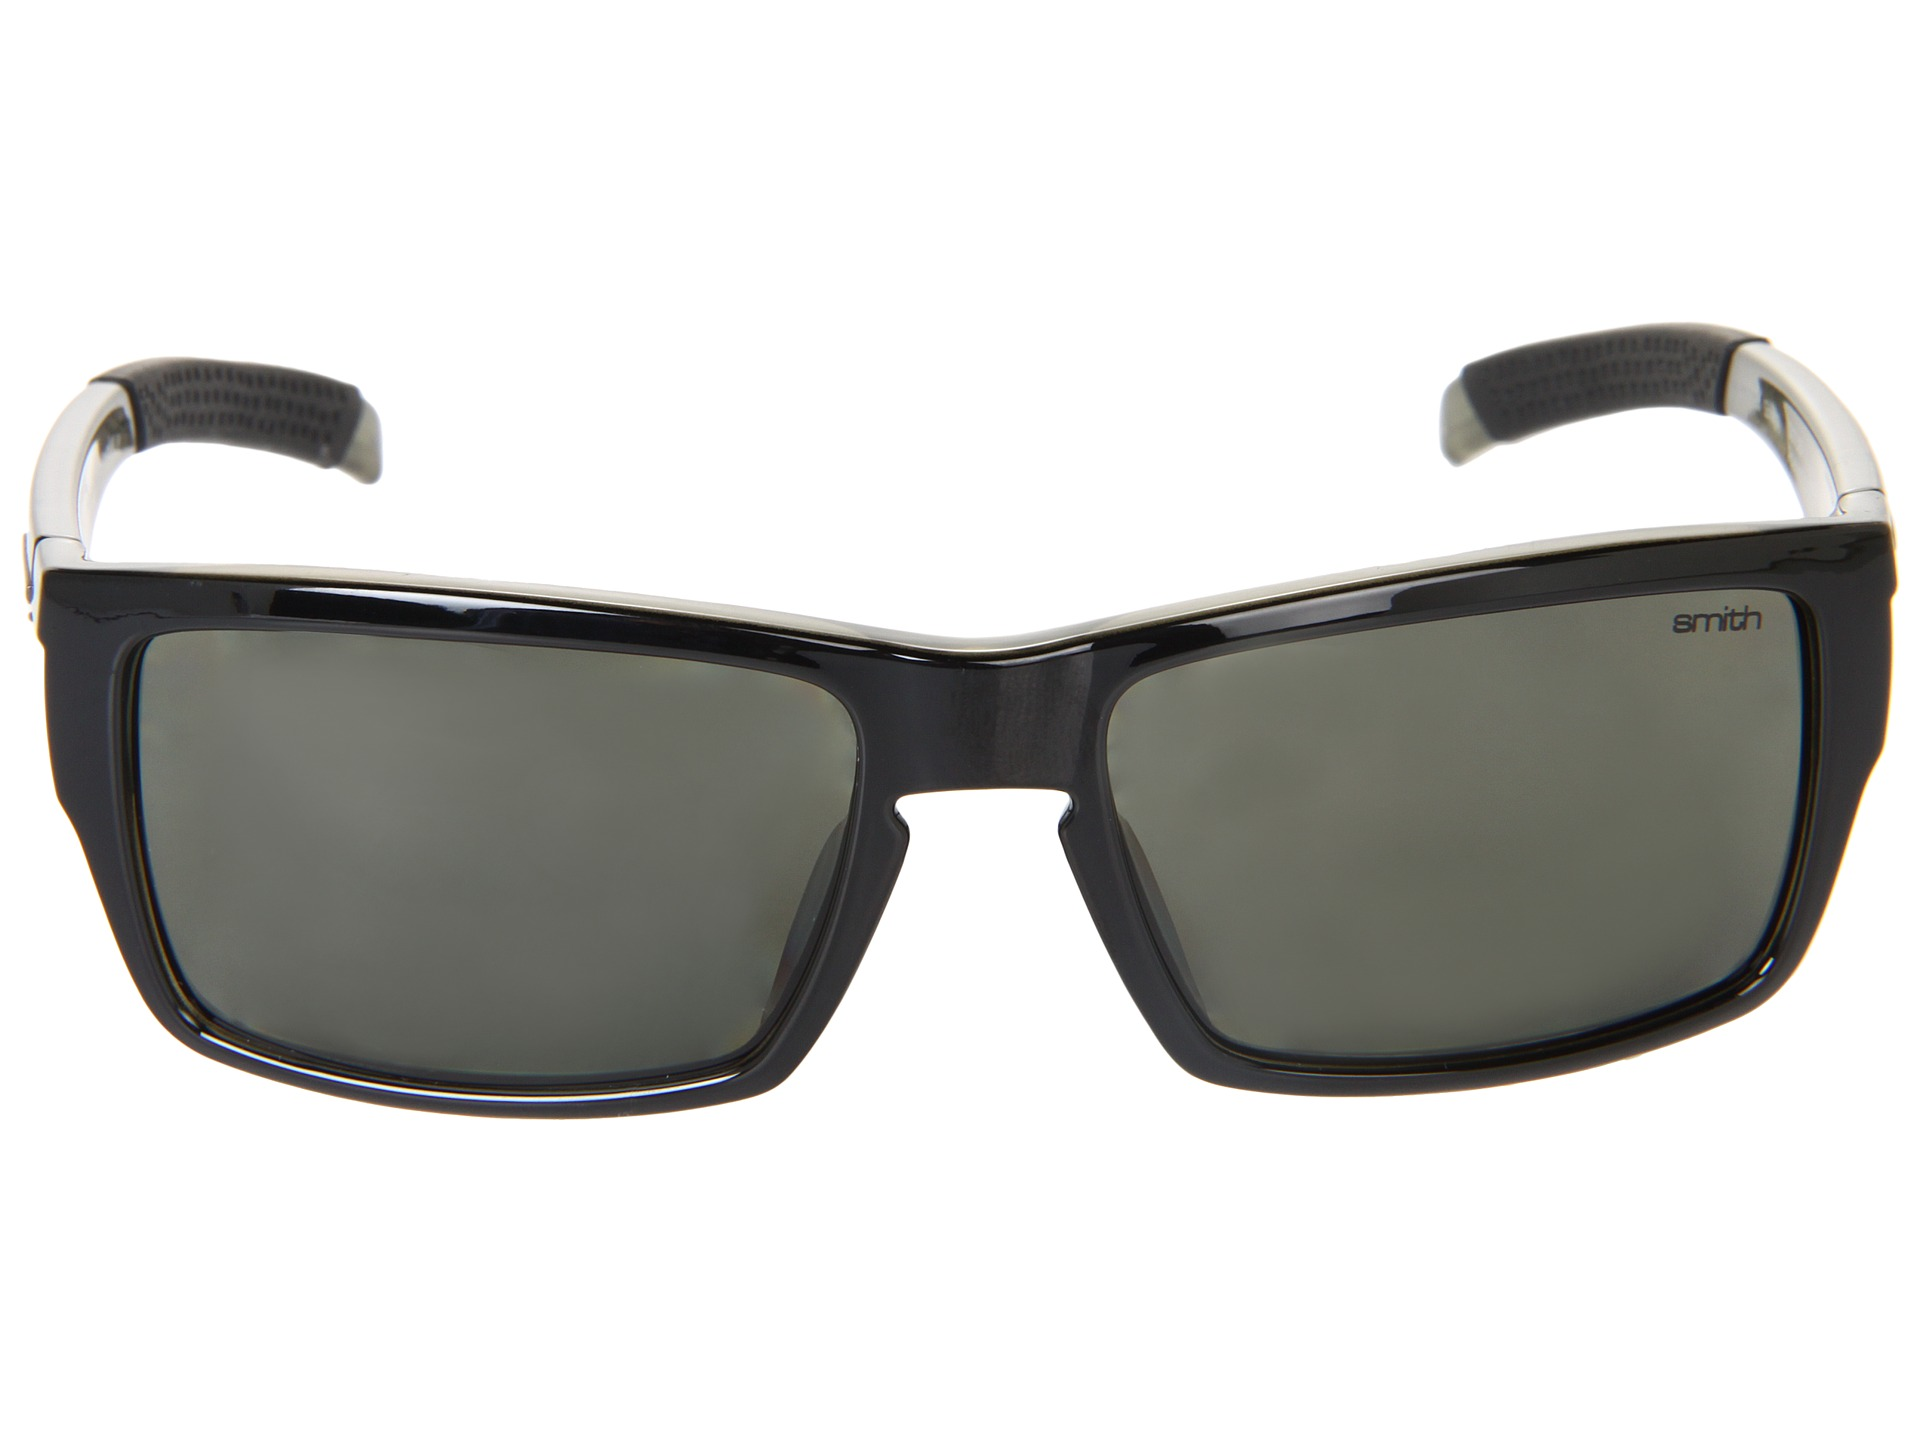 19a493f1a468 Smith Outlier Sunglasses Review « Heritage Malta